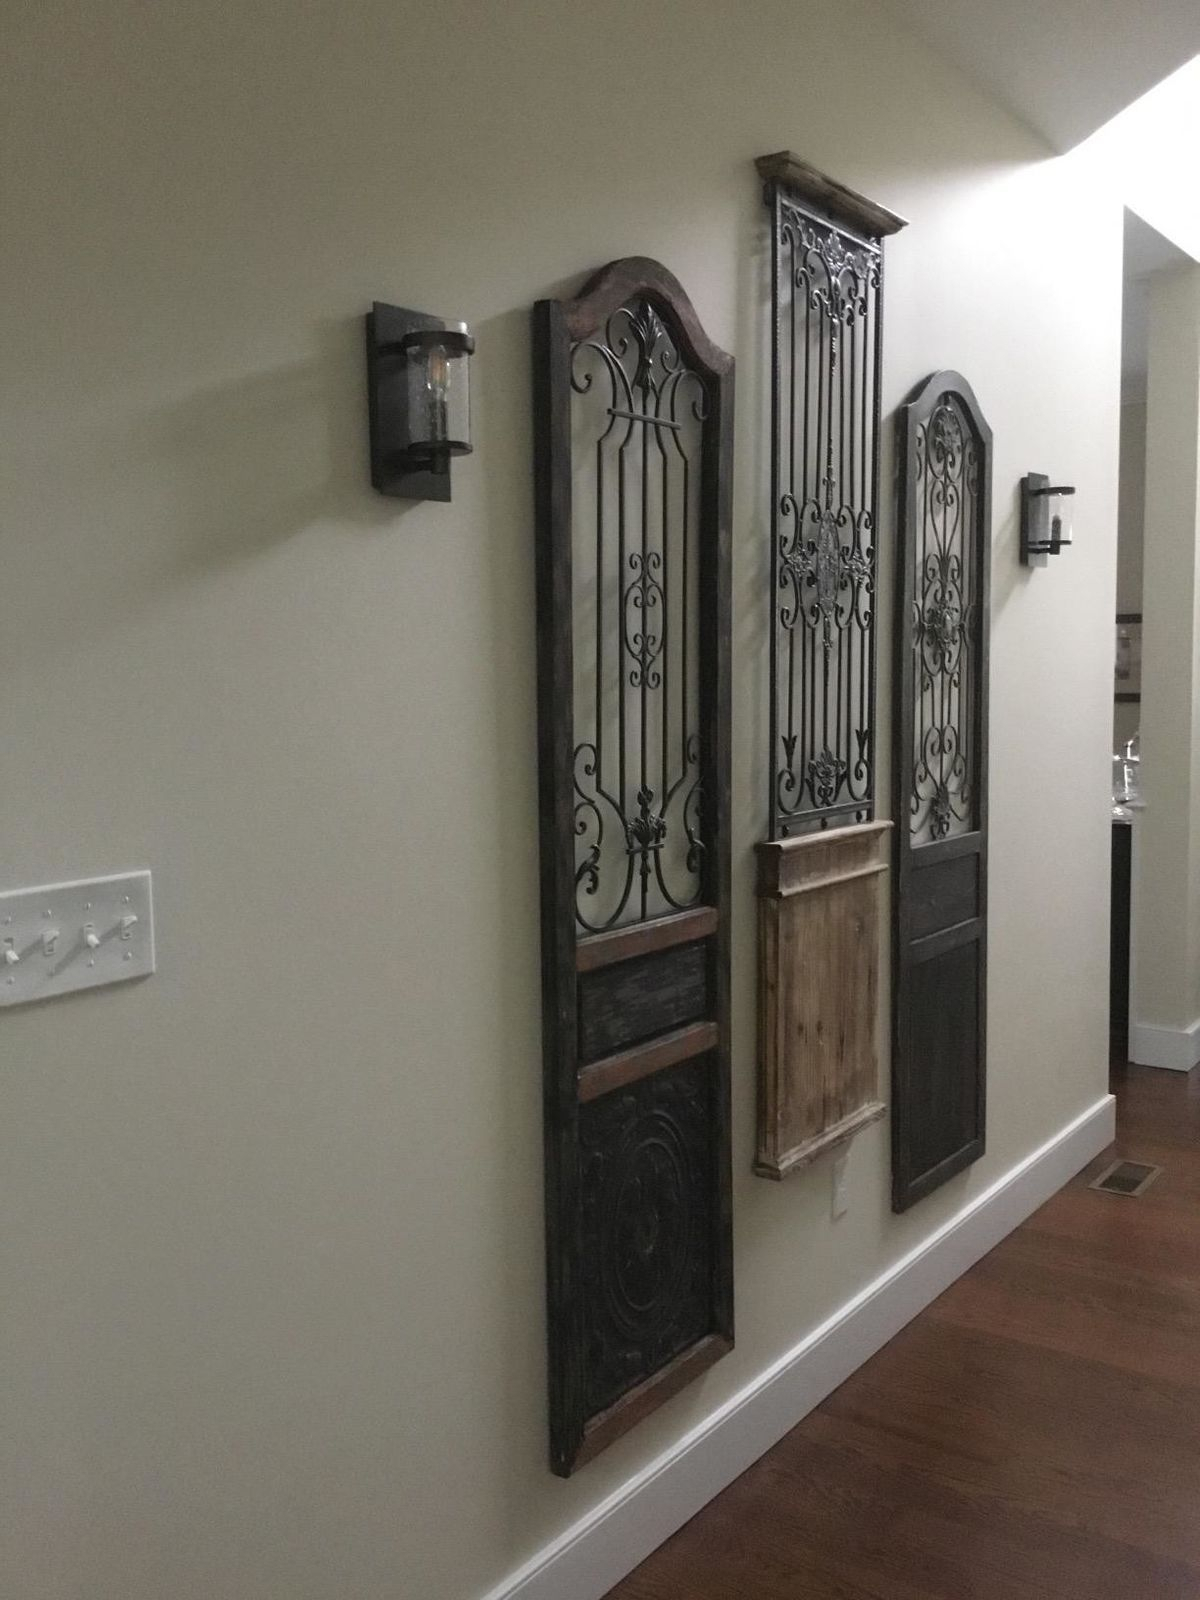 Iron Scroll Work Wood Wall Decor Garden Rustic Arched Inside Scroll Panel Wall Decor (View 17 of 30)